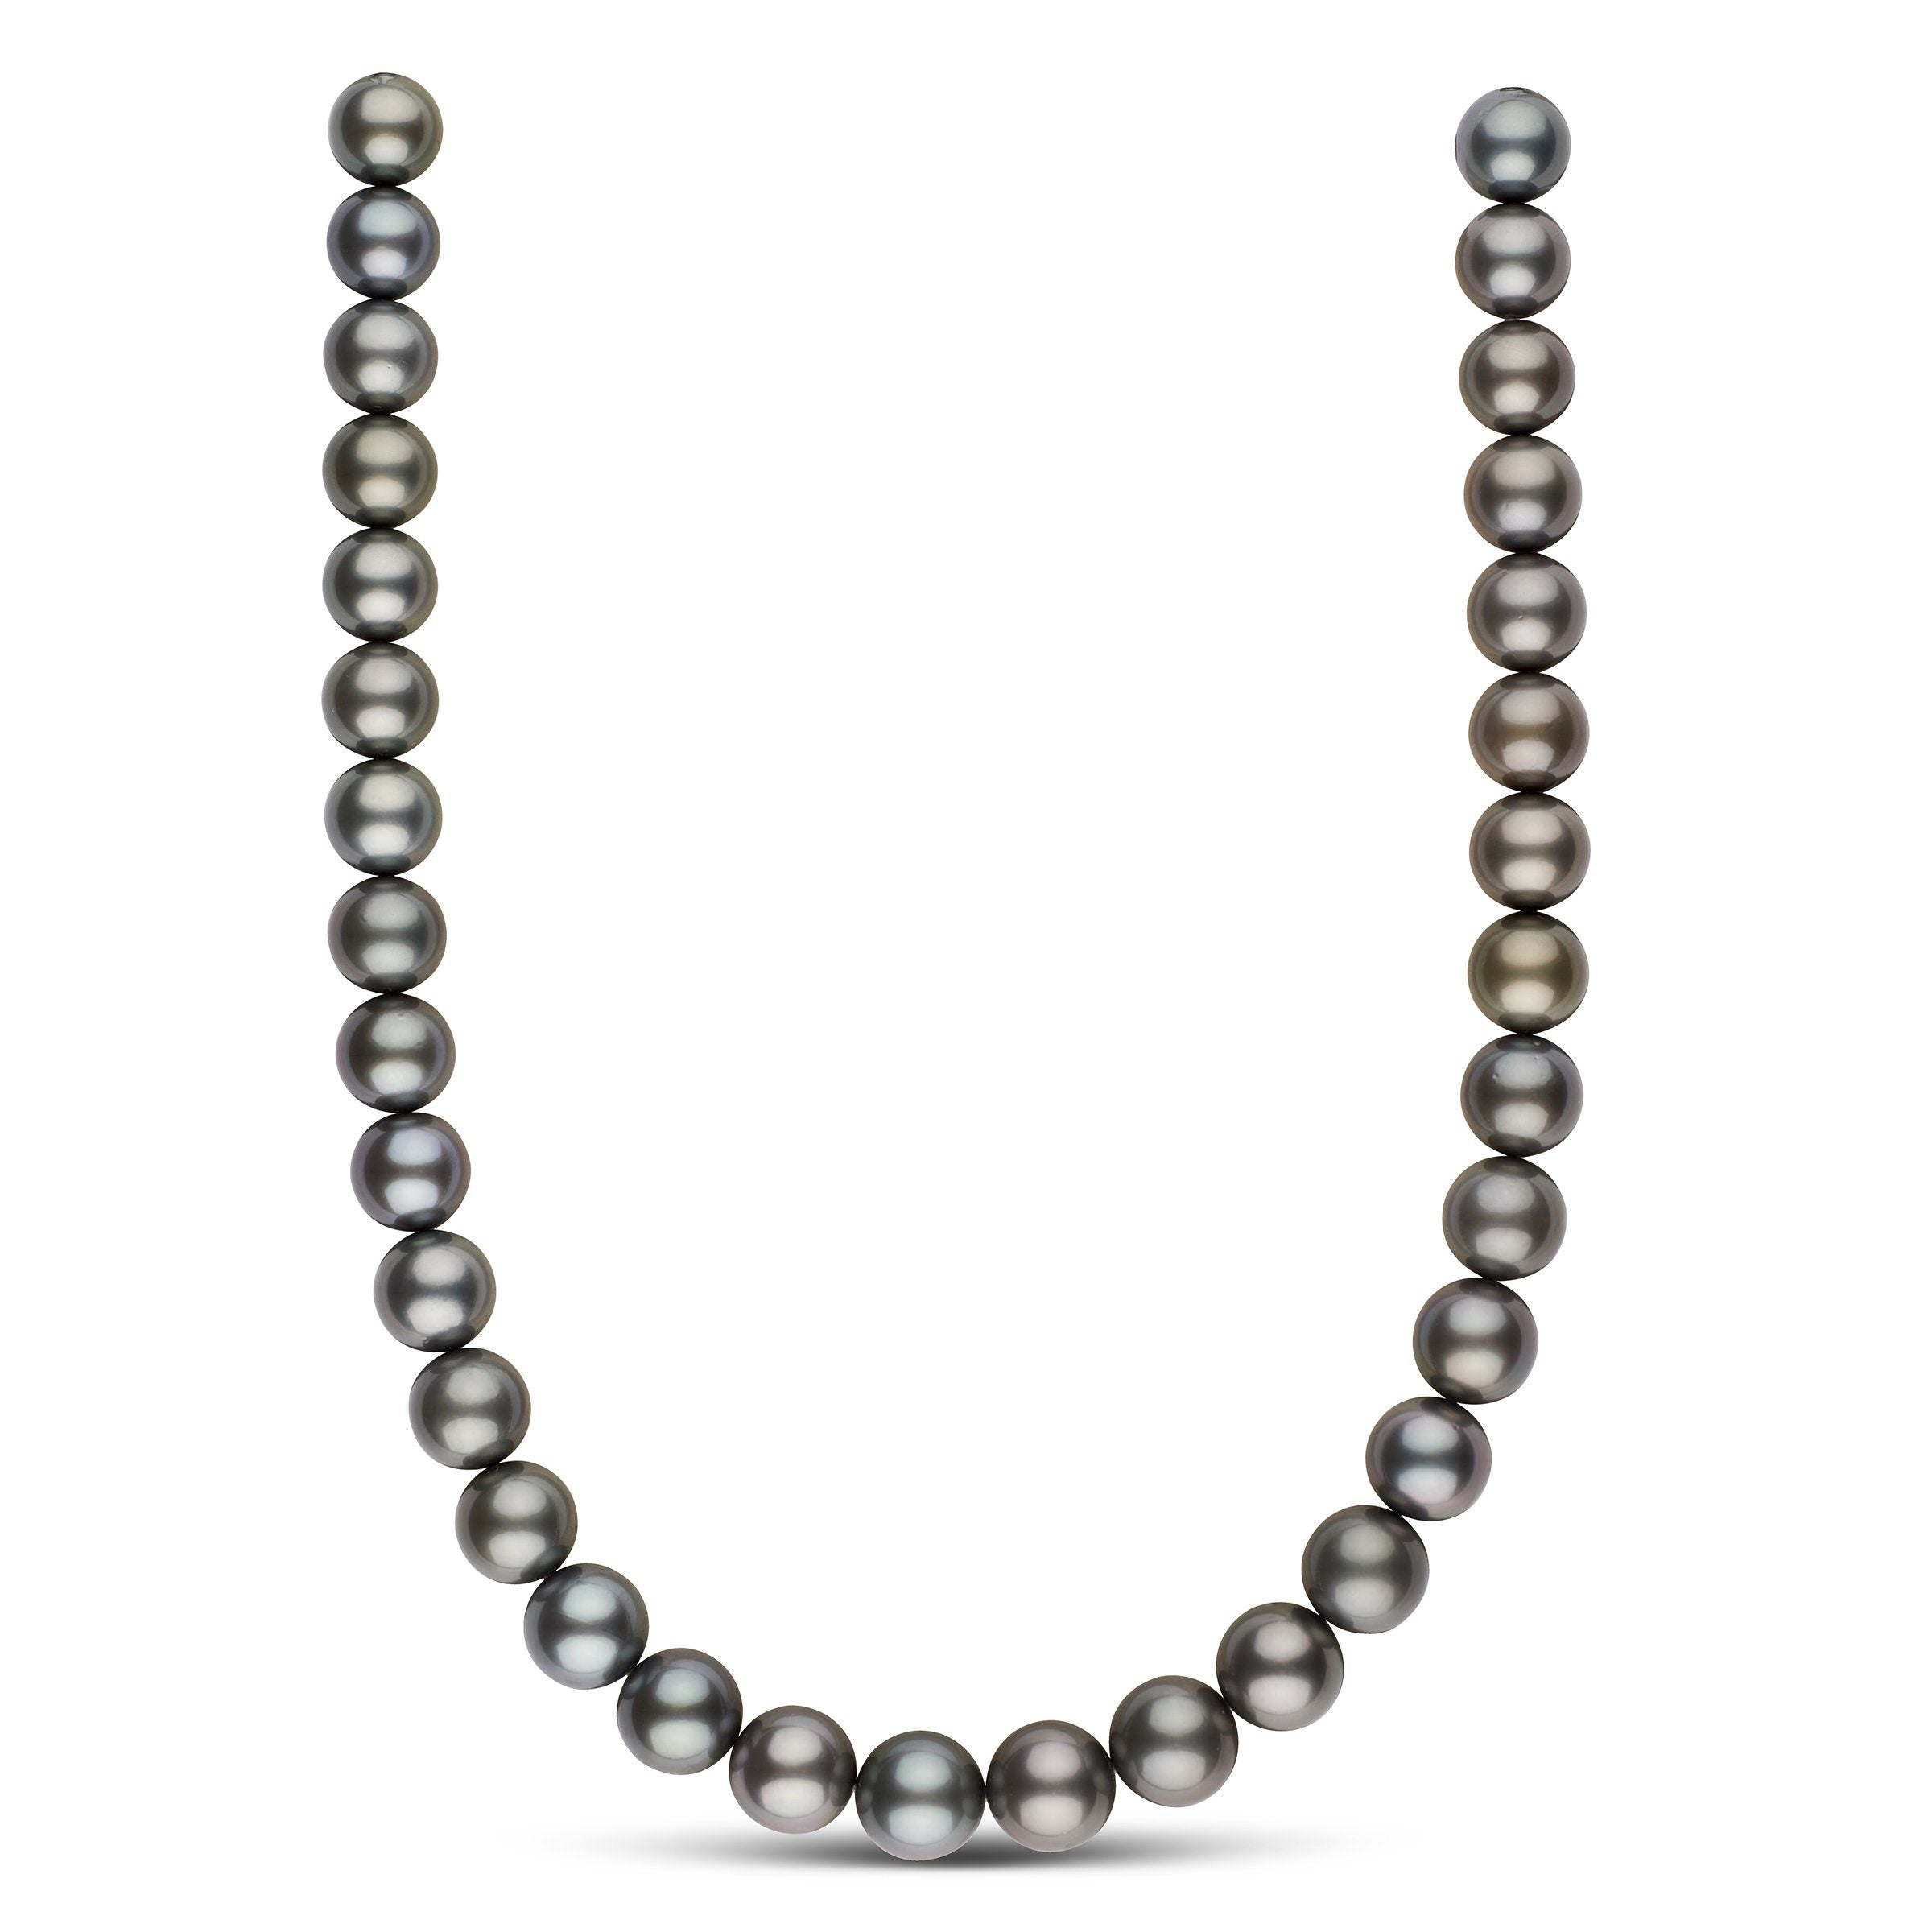 12.0-13.4 mm AA+/AAA Tahitian Round Pearl Necklace